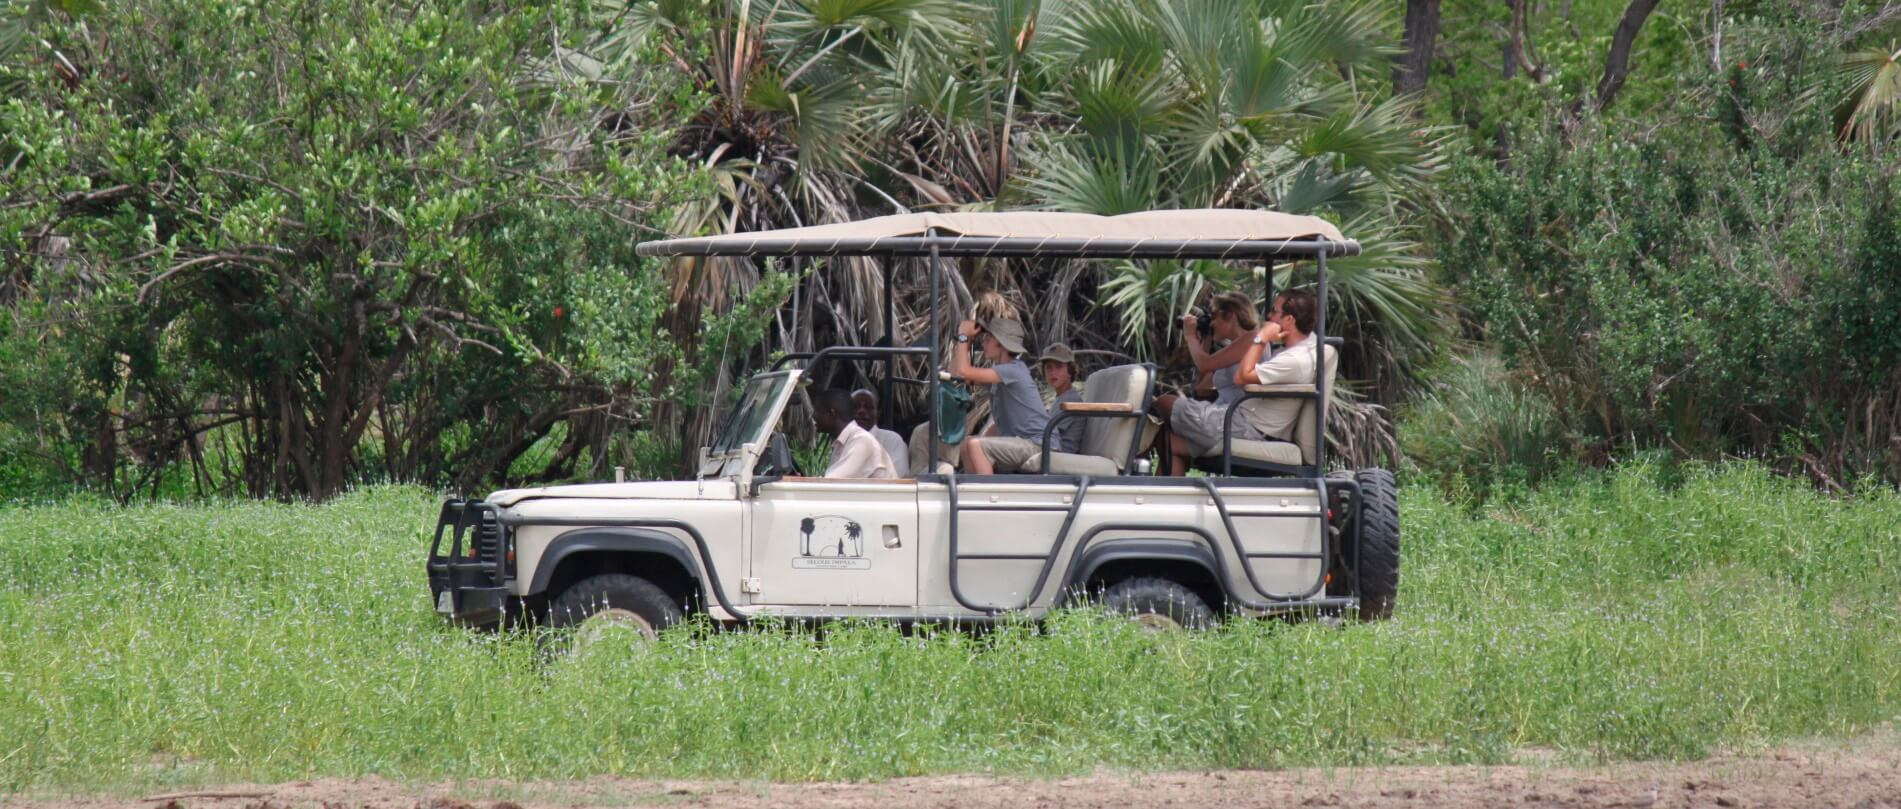 Game drive at Lake Manze Camp in Selous Game Reserve